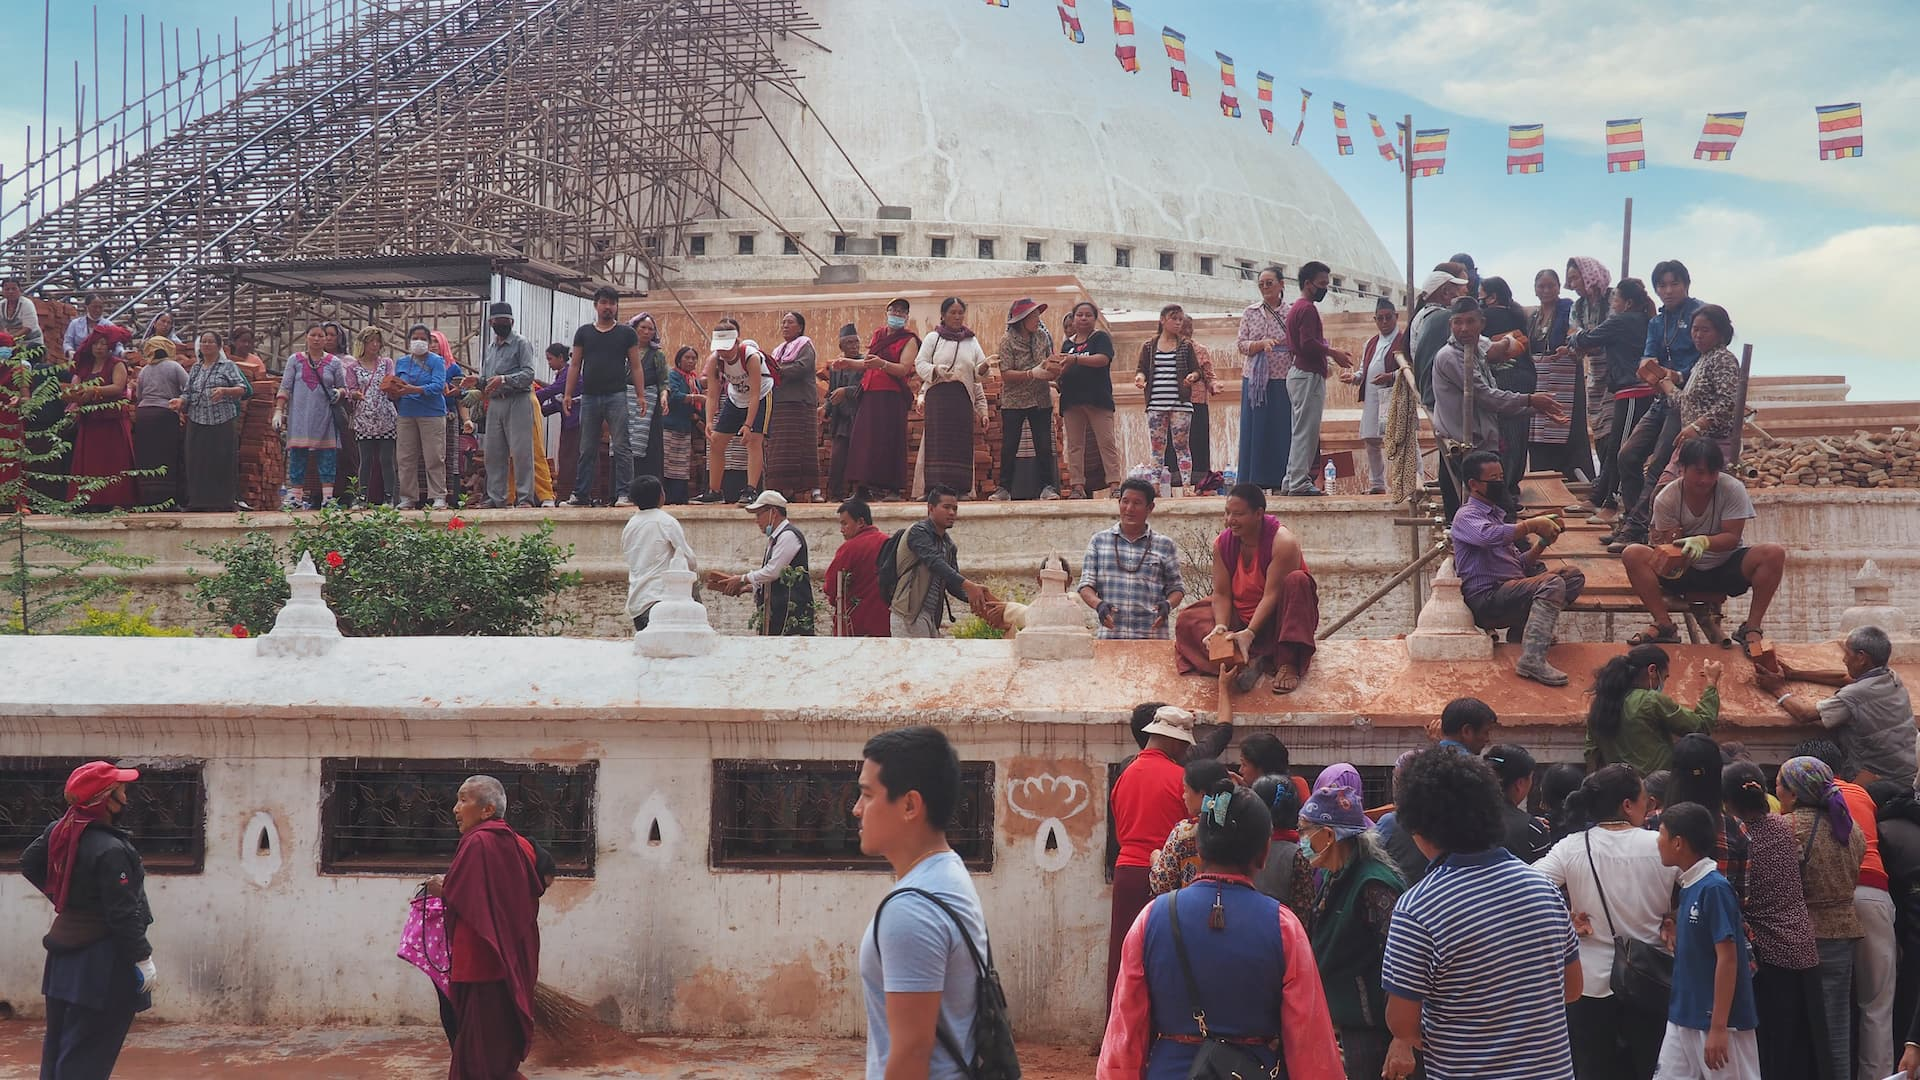 People standing around the Boudha Stupa passing building materials to one another